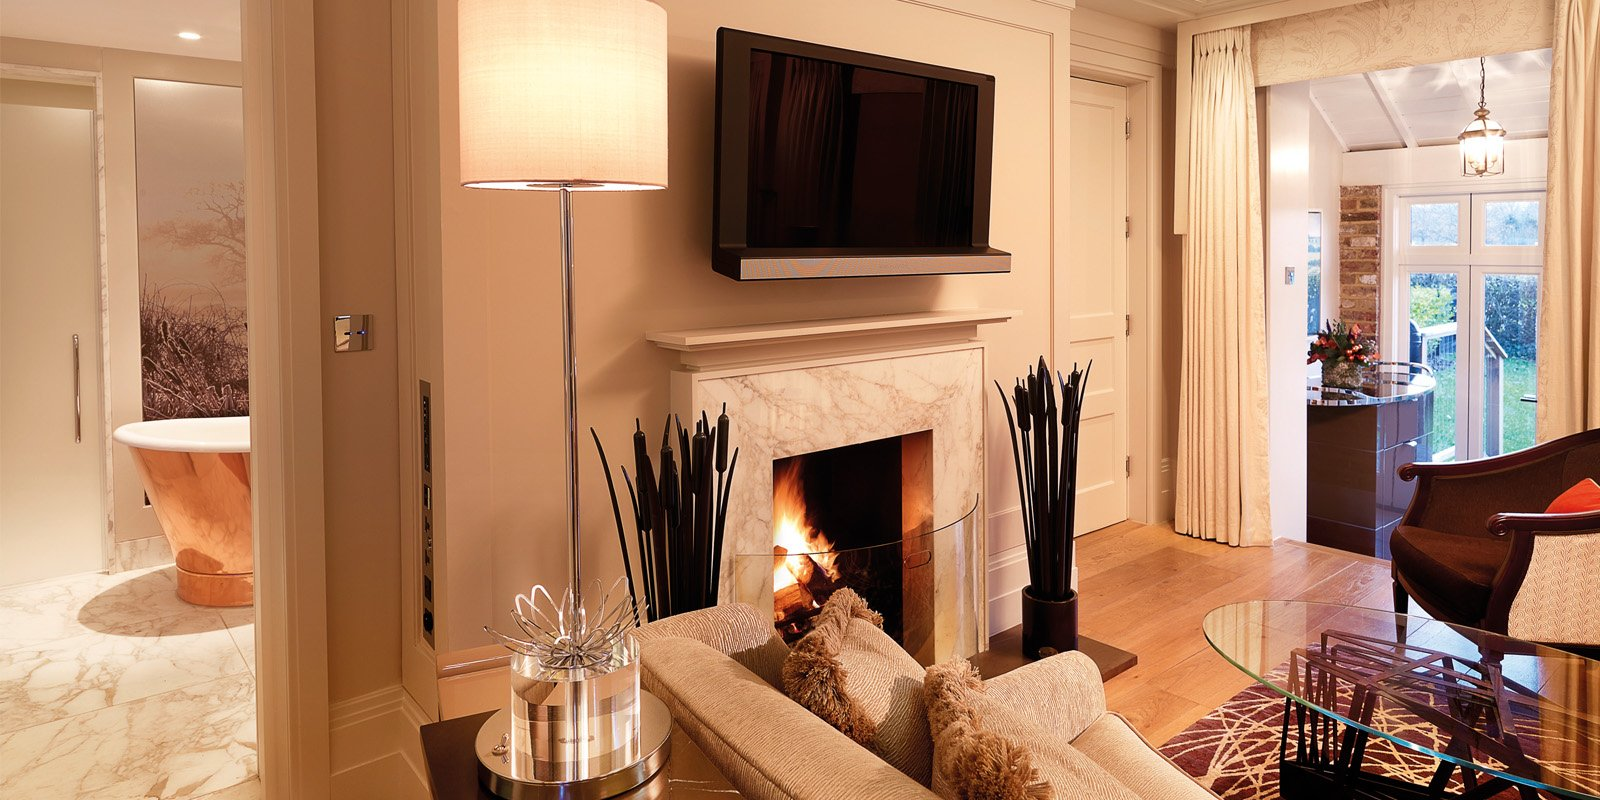 5 star suites u0026 rooms country house hotel u0026 spa ascot